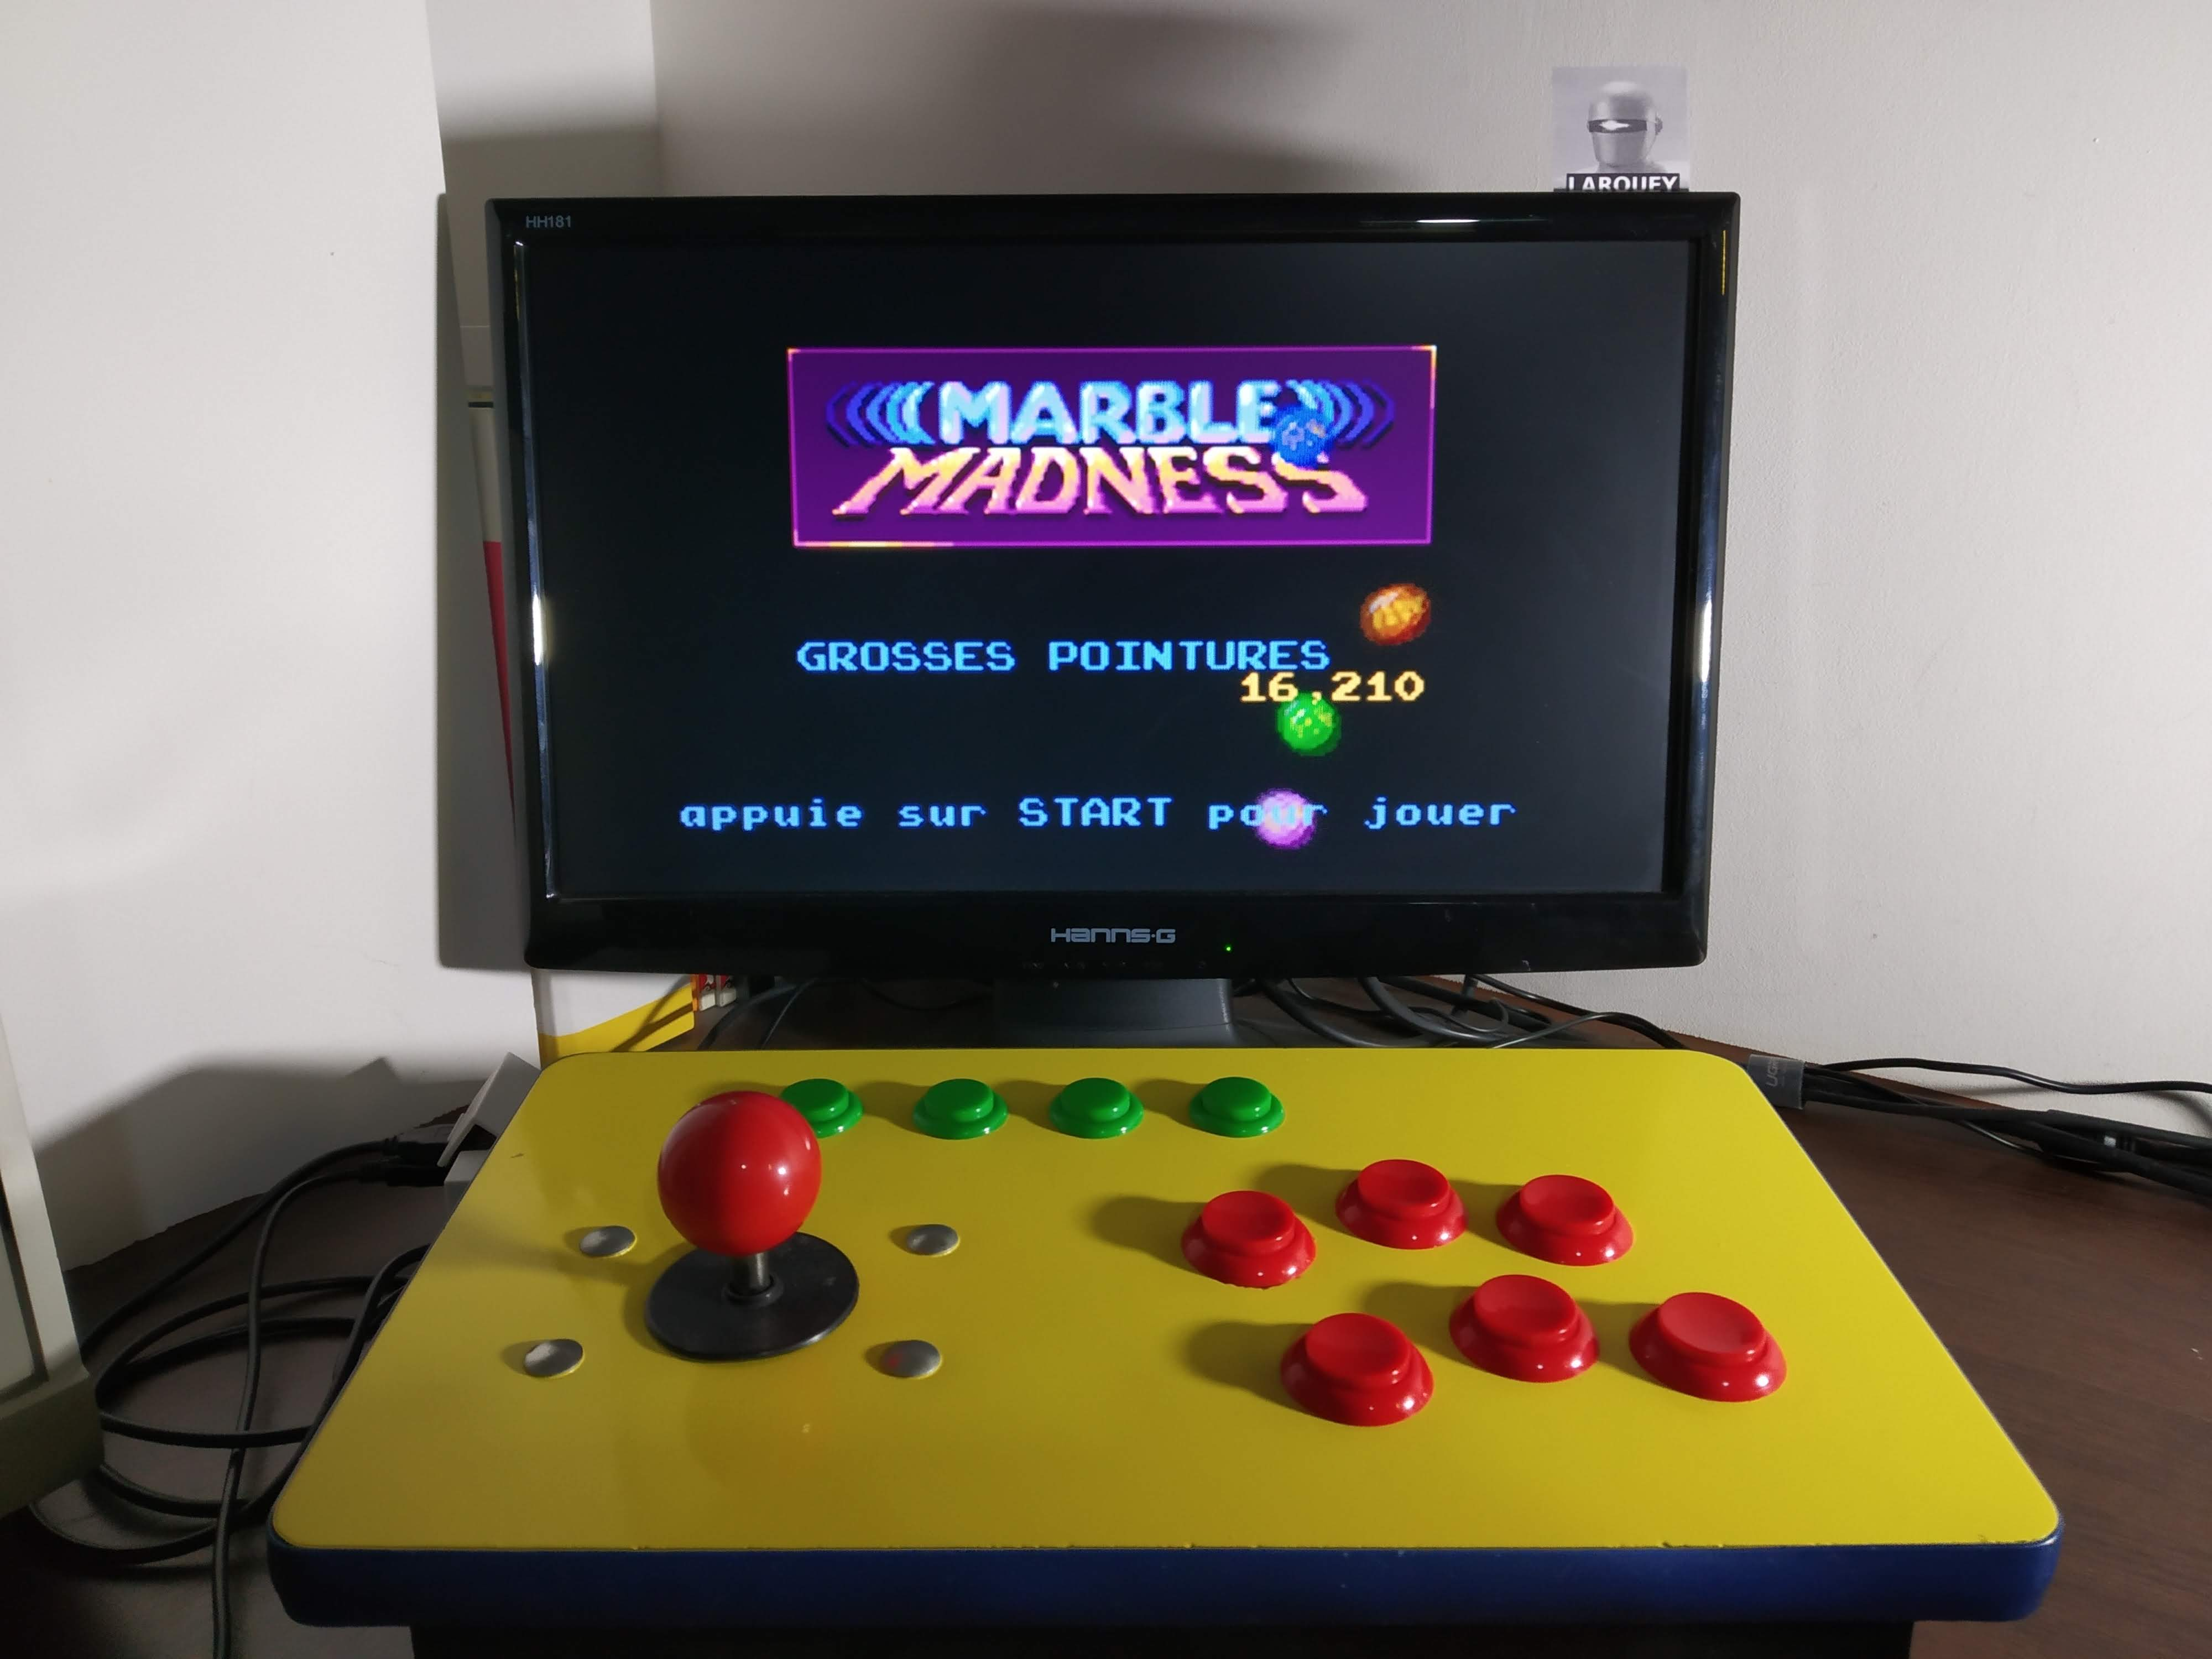 Marble Madness 16,210 points